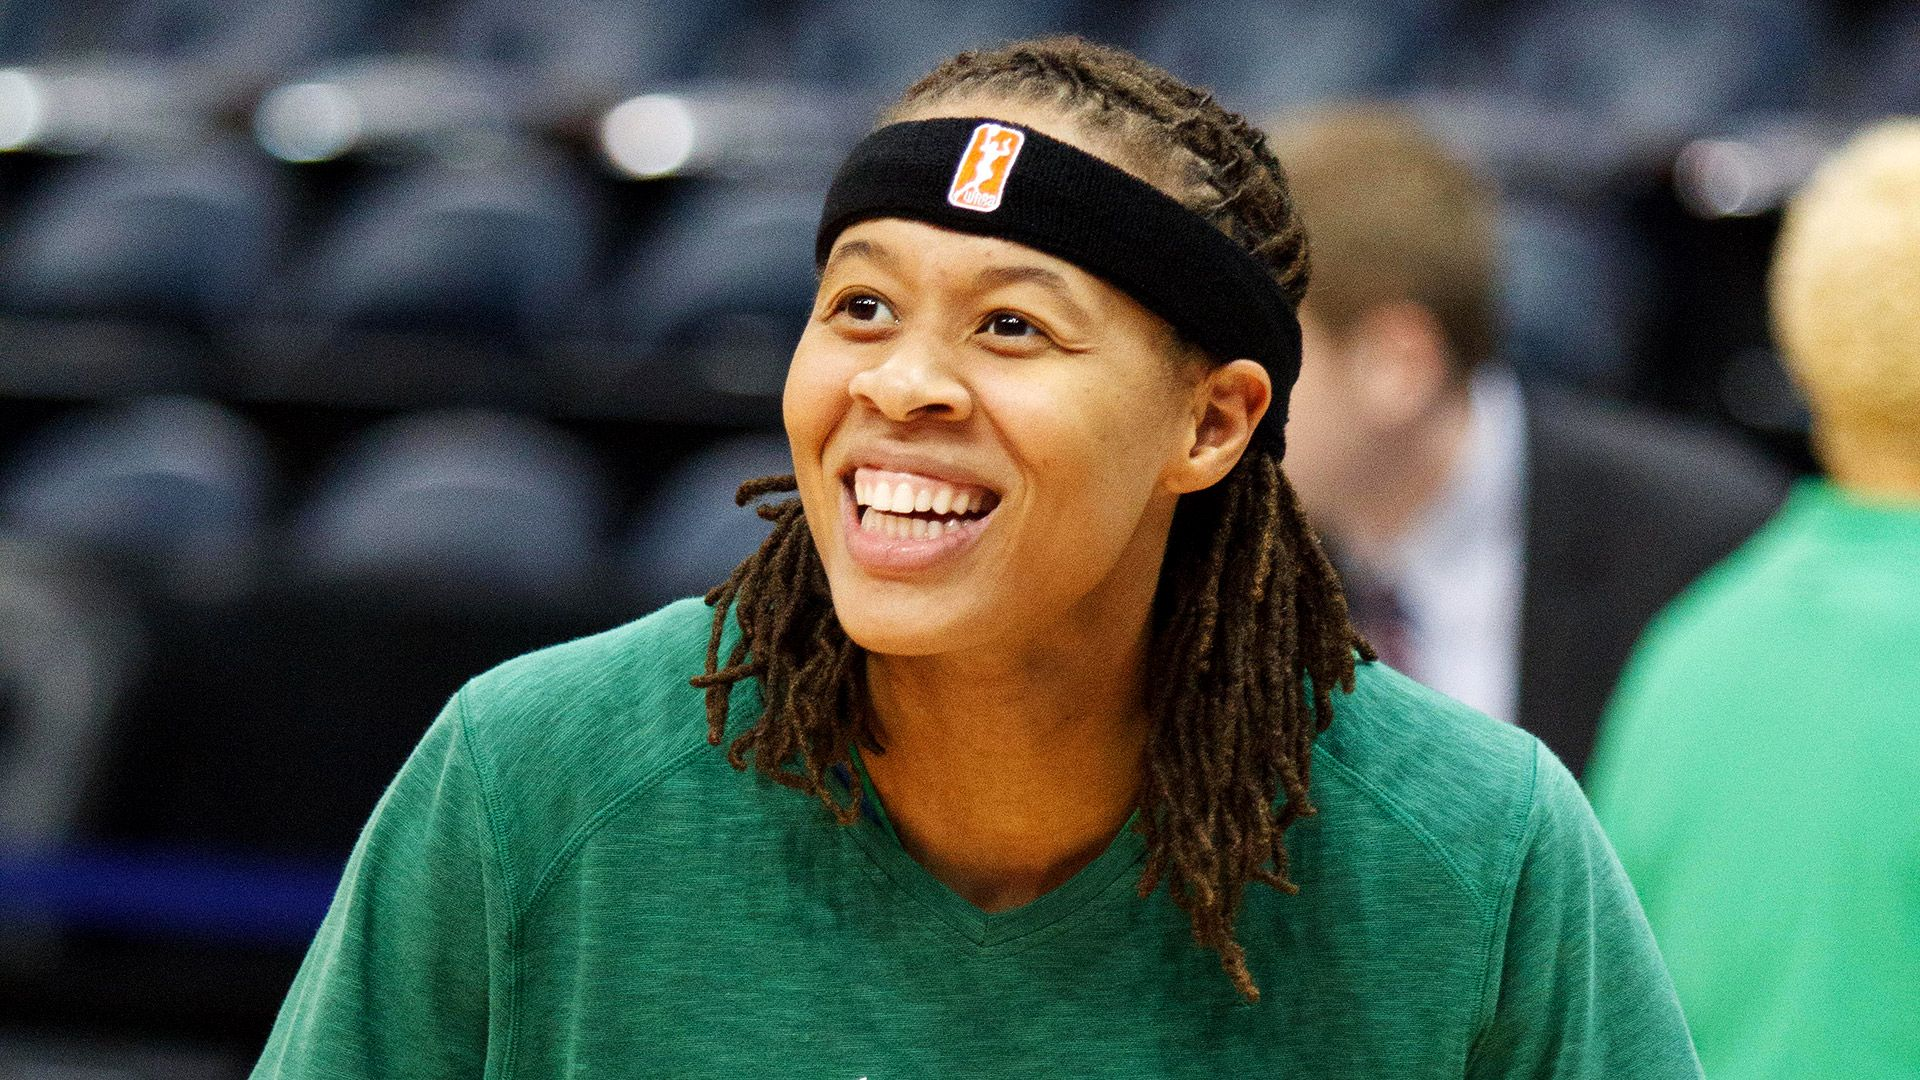 WNBA Finals - Seimone Augustus ready to put 2012 disappointment behind her